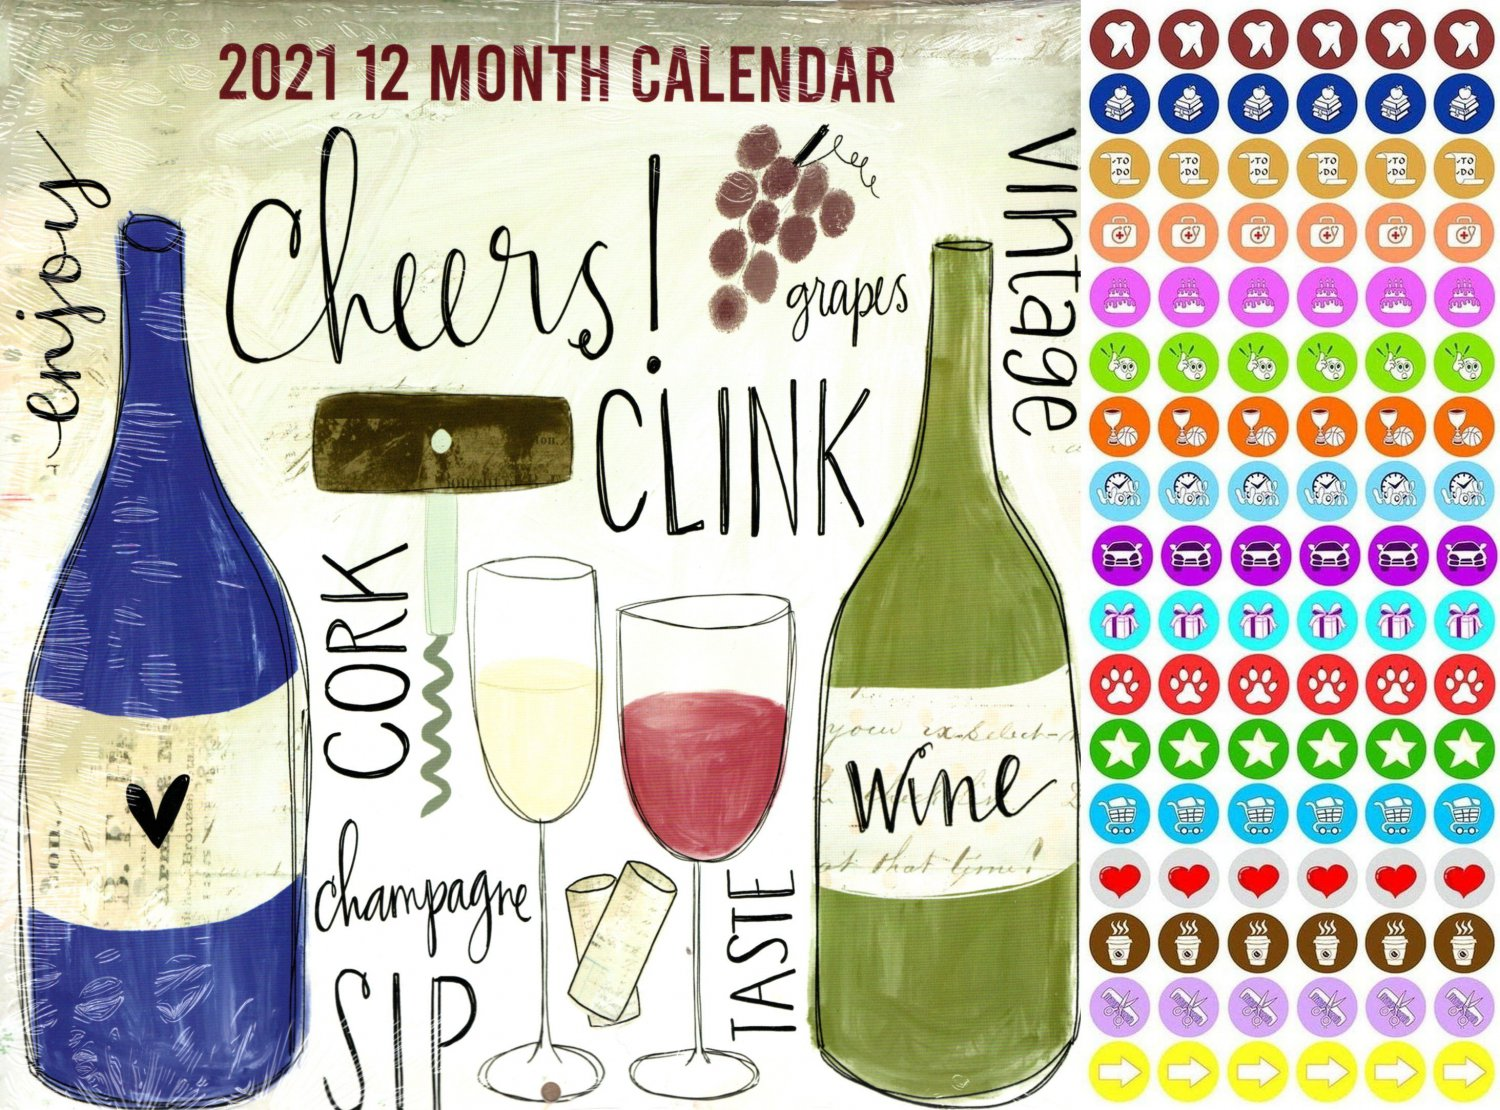 2021 12 Month Wall Calendar - Cheers, Enjoy, Wine - with 100 Reminder Stickers